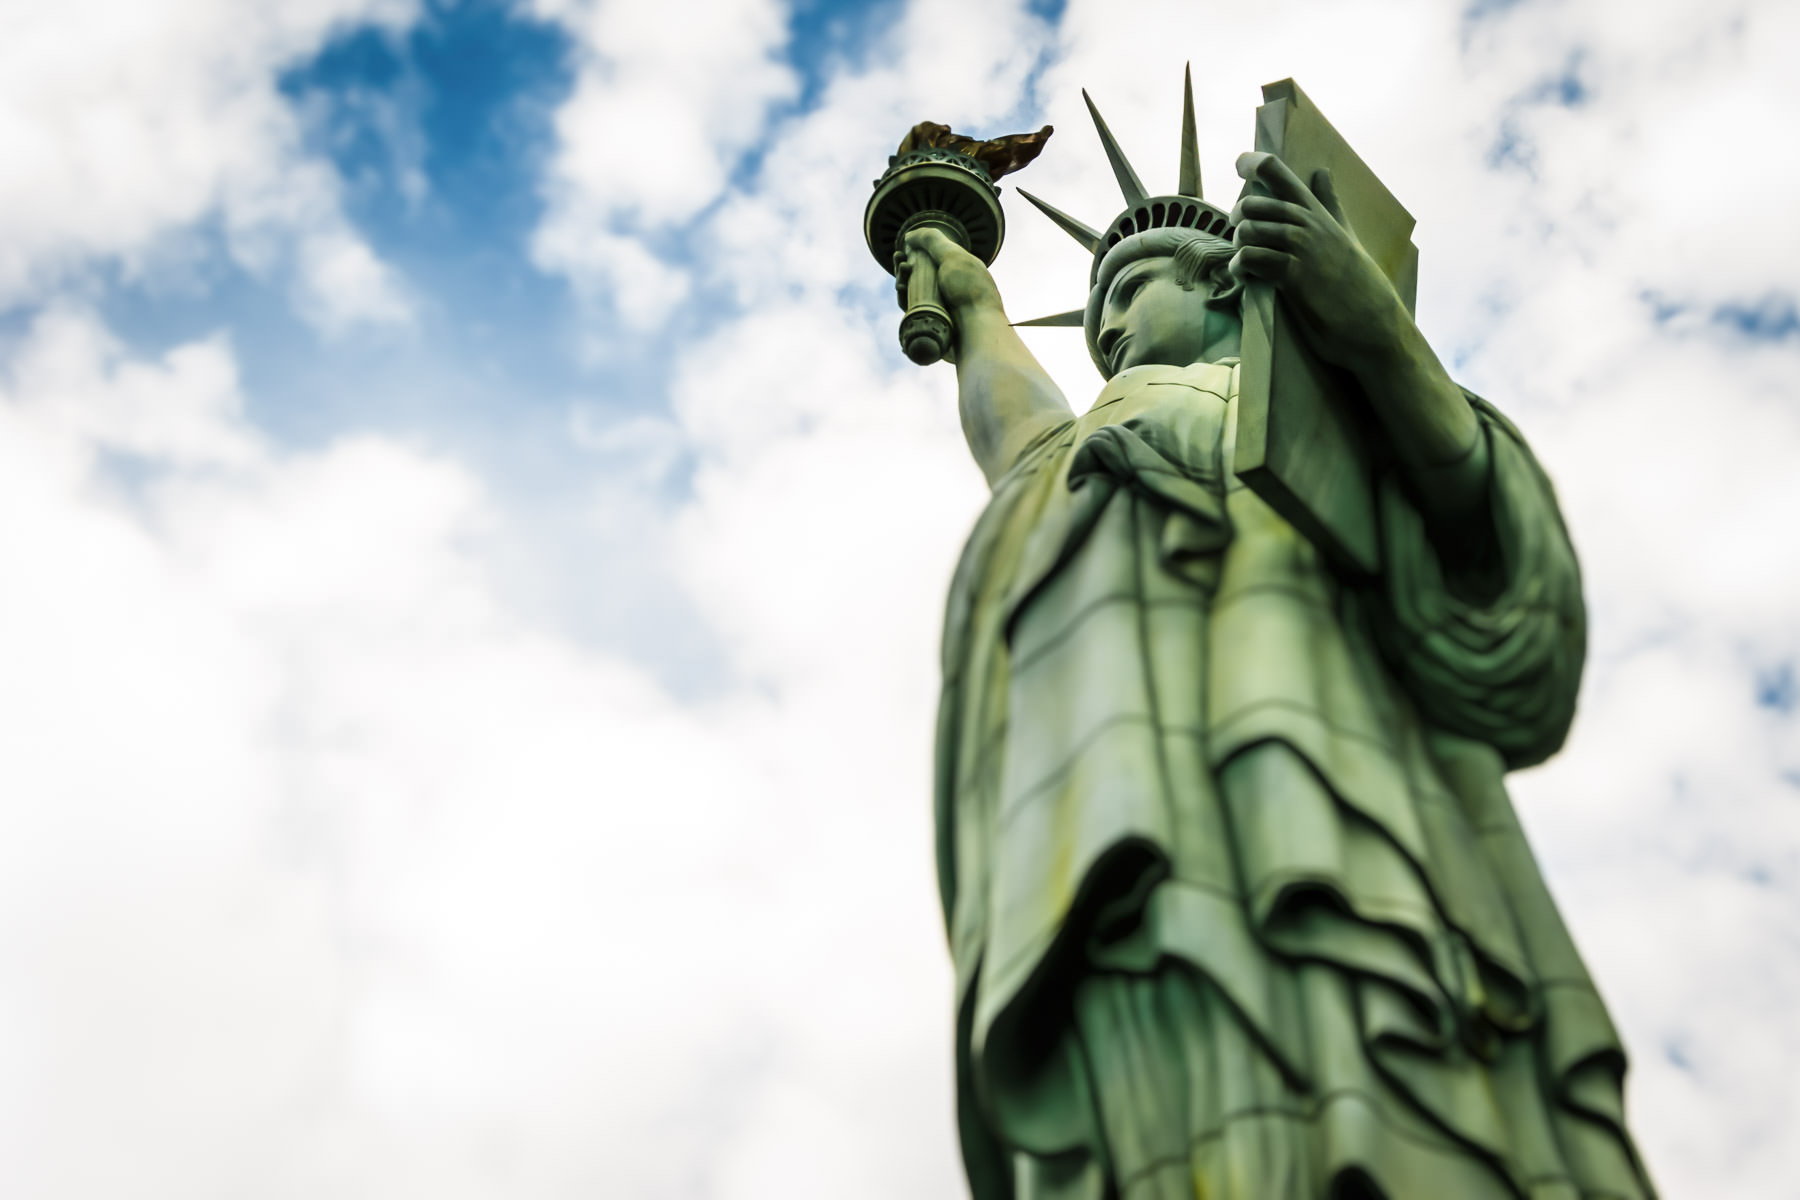 The reproduction of the Statue of Liberty at Las Vegas' New York New York Hotel and Casino.